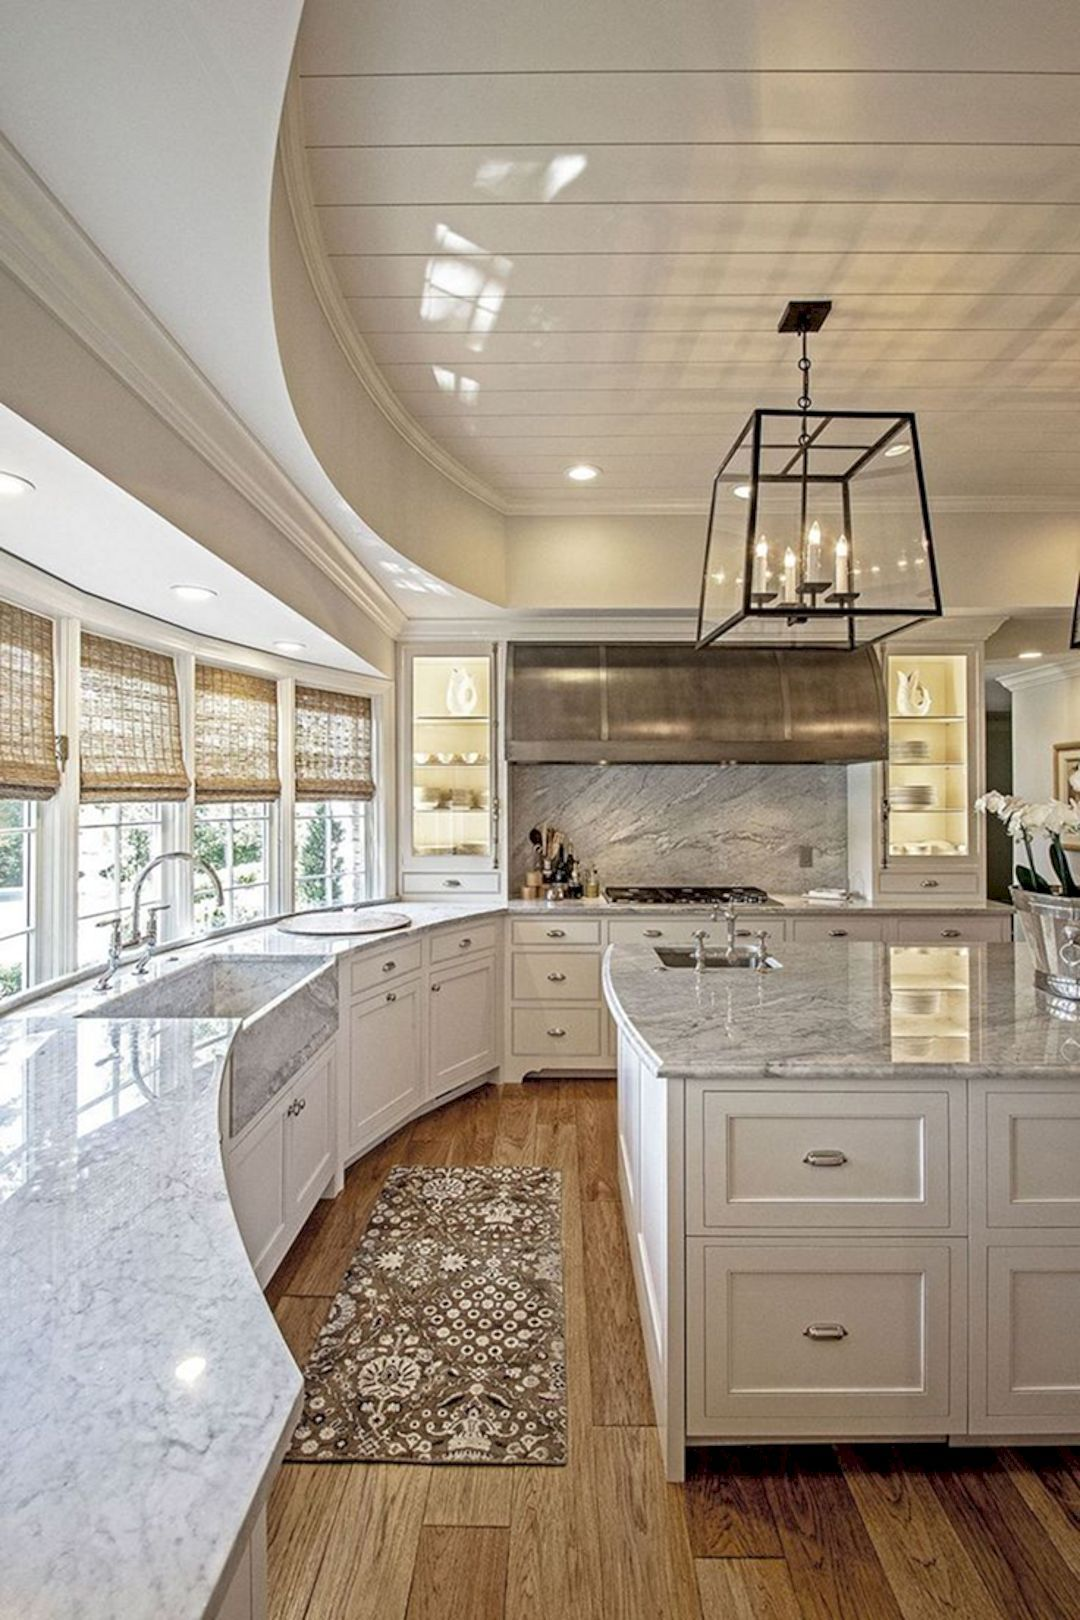 Contemporary Small Kitchen With Island Ideas Html on kitchen island with island, modern kitchen with island, traditional kitchens with island, small kitchen plans with island, small kitchen makeovers, small narrow kitchen with island, small kitchen designs, small kitchen islands with storage, small galley kitchen with island, tuscan kitchen with island, small kitchen island with sink, country kitchens with island, oak cabinets with island, small homemade kitchen island ideas, white kitchen with island, small kitchen remodel with island, kitchen cabinets with island, small kitchen islands with stoves, small kitchen island with seating, ideas for small kitchens kitchen island,